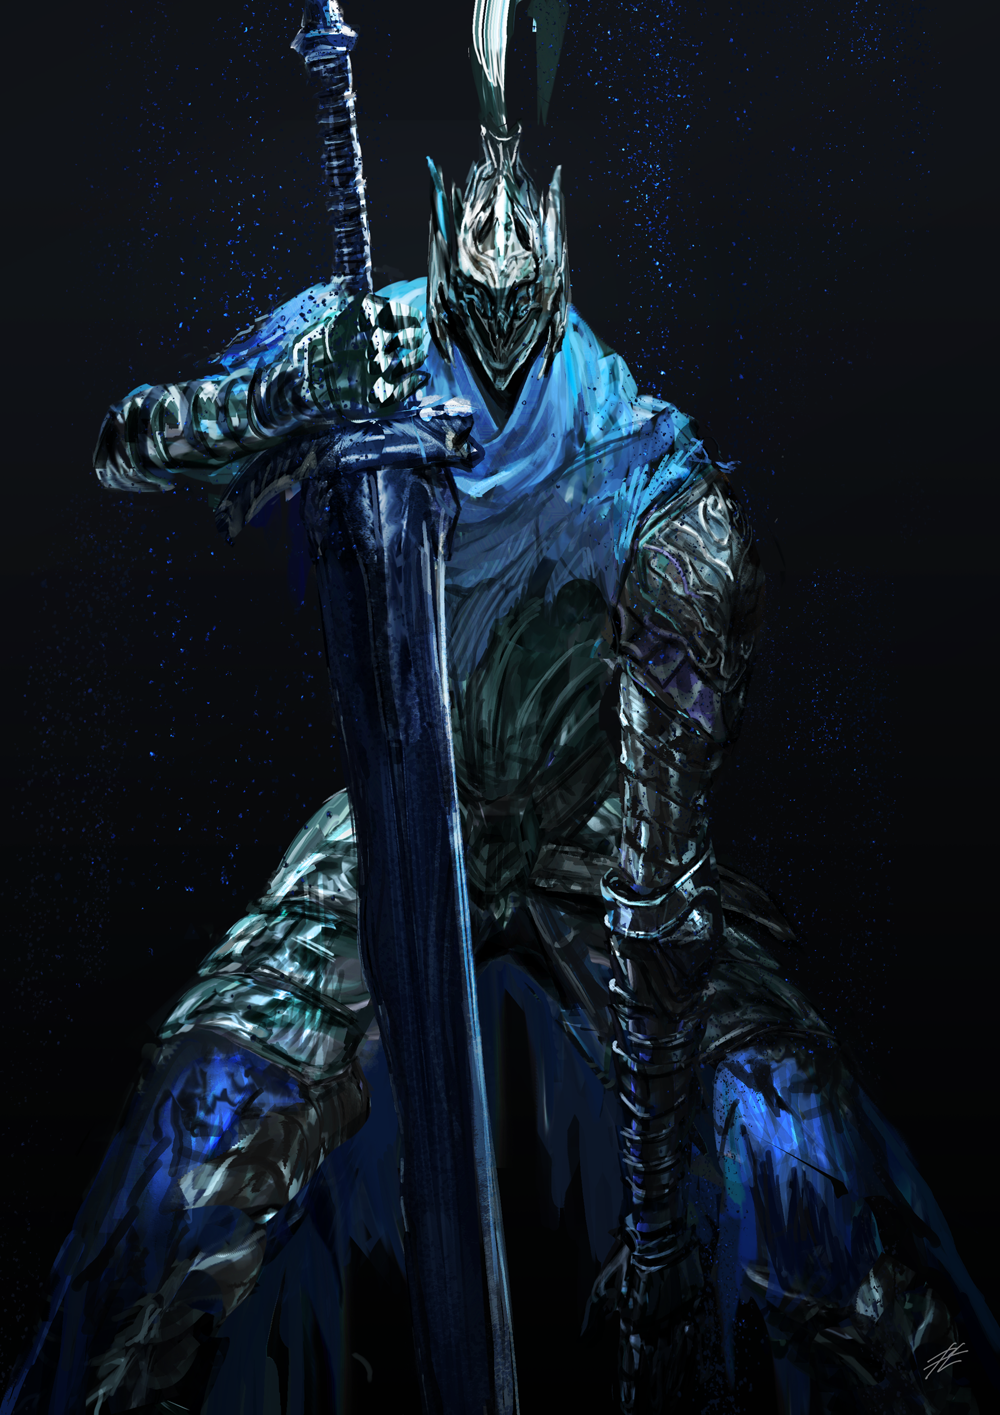 1boy armor artorias_the_abysswalker black_background blue_capelet breastplate capelet commentary_request cowboy_shot dark_souls faceless faceless_male facing_viewer faulds full_armor gauntlets greatsword greaves helmet highres holding holding_sword holding_weapon knight light_particles male_focus mrpk pauldrons planted_sword planted_weapon plume shoulder_armor solo souls_(from_software) standing sword waist_cape weapon